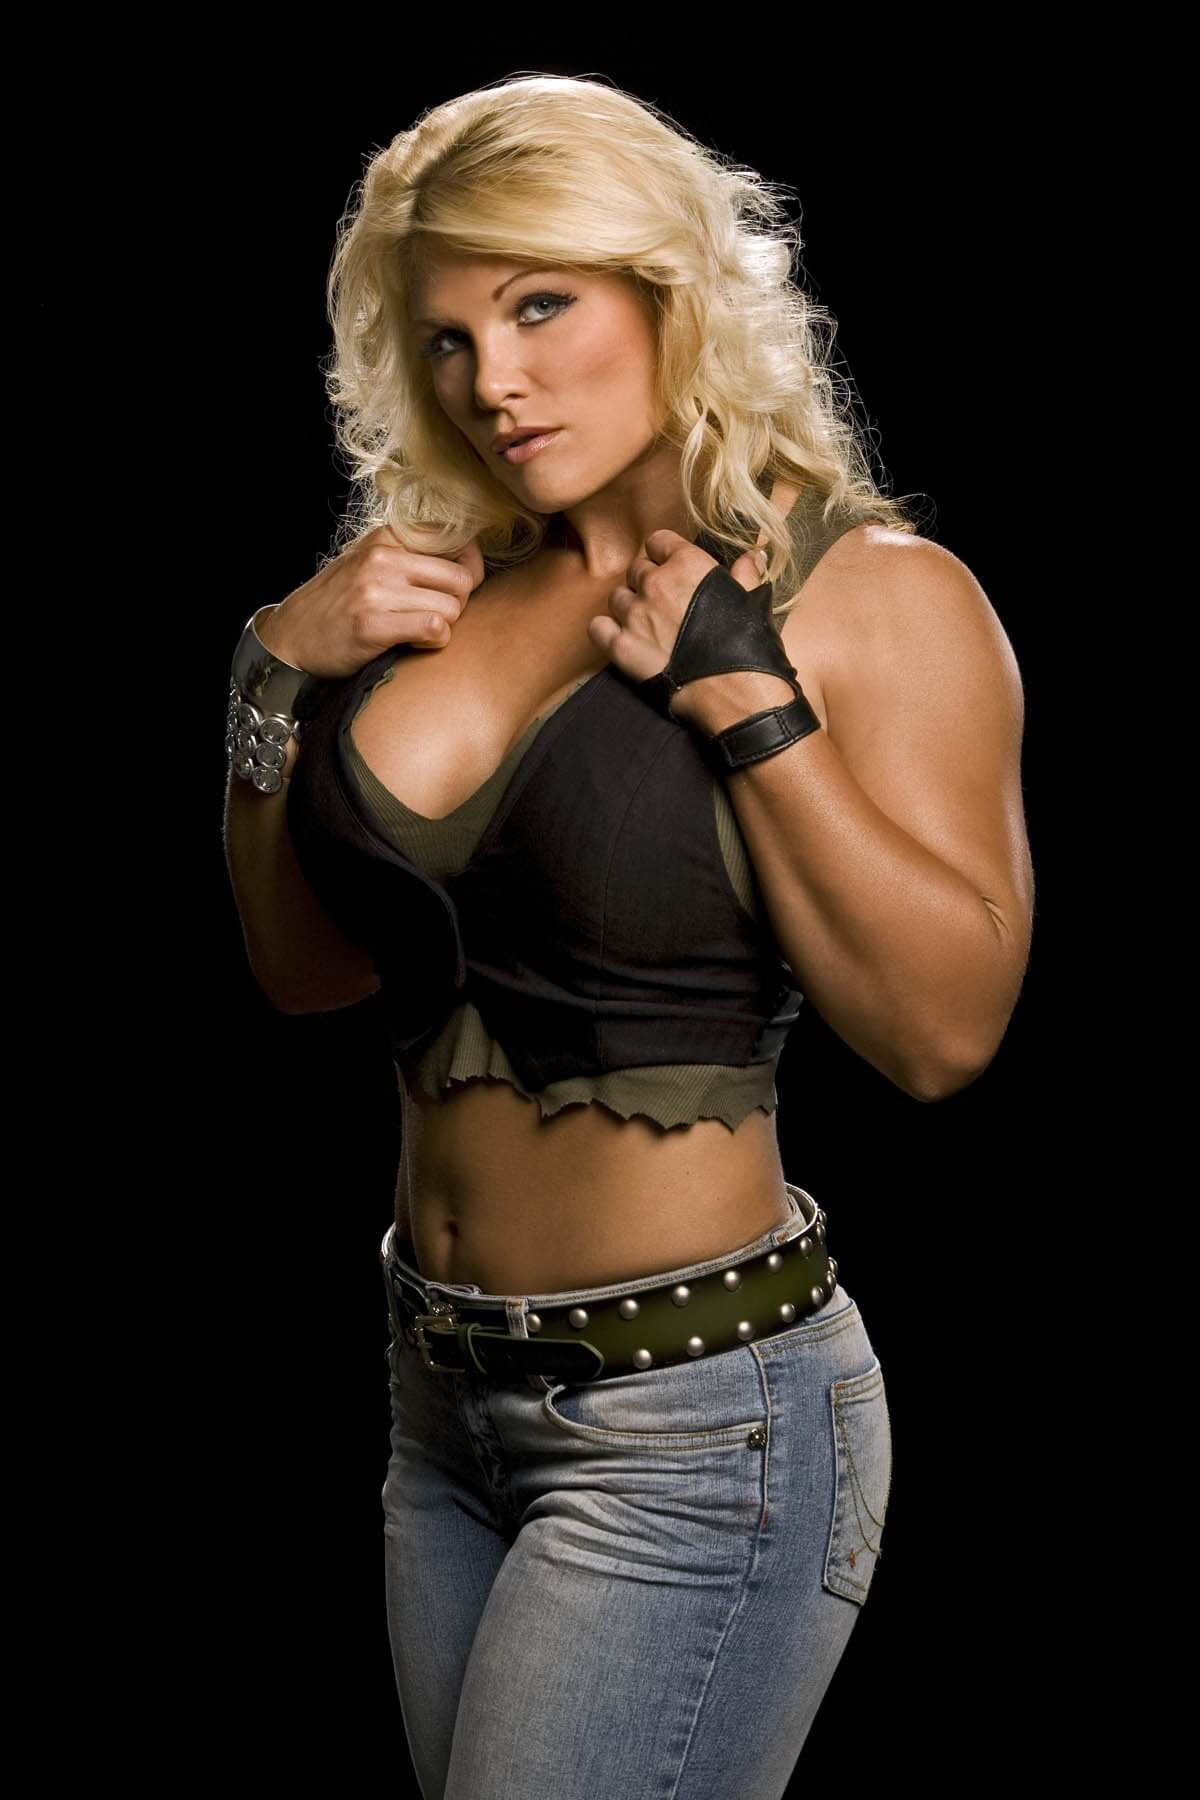 Beth-Phoenix awesome pic